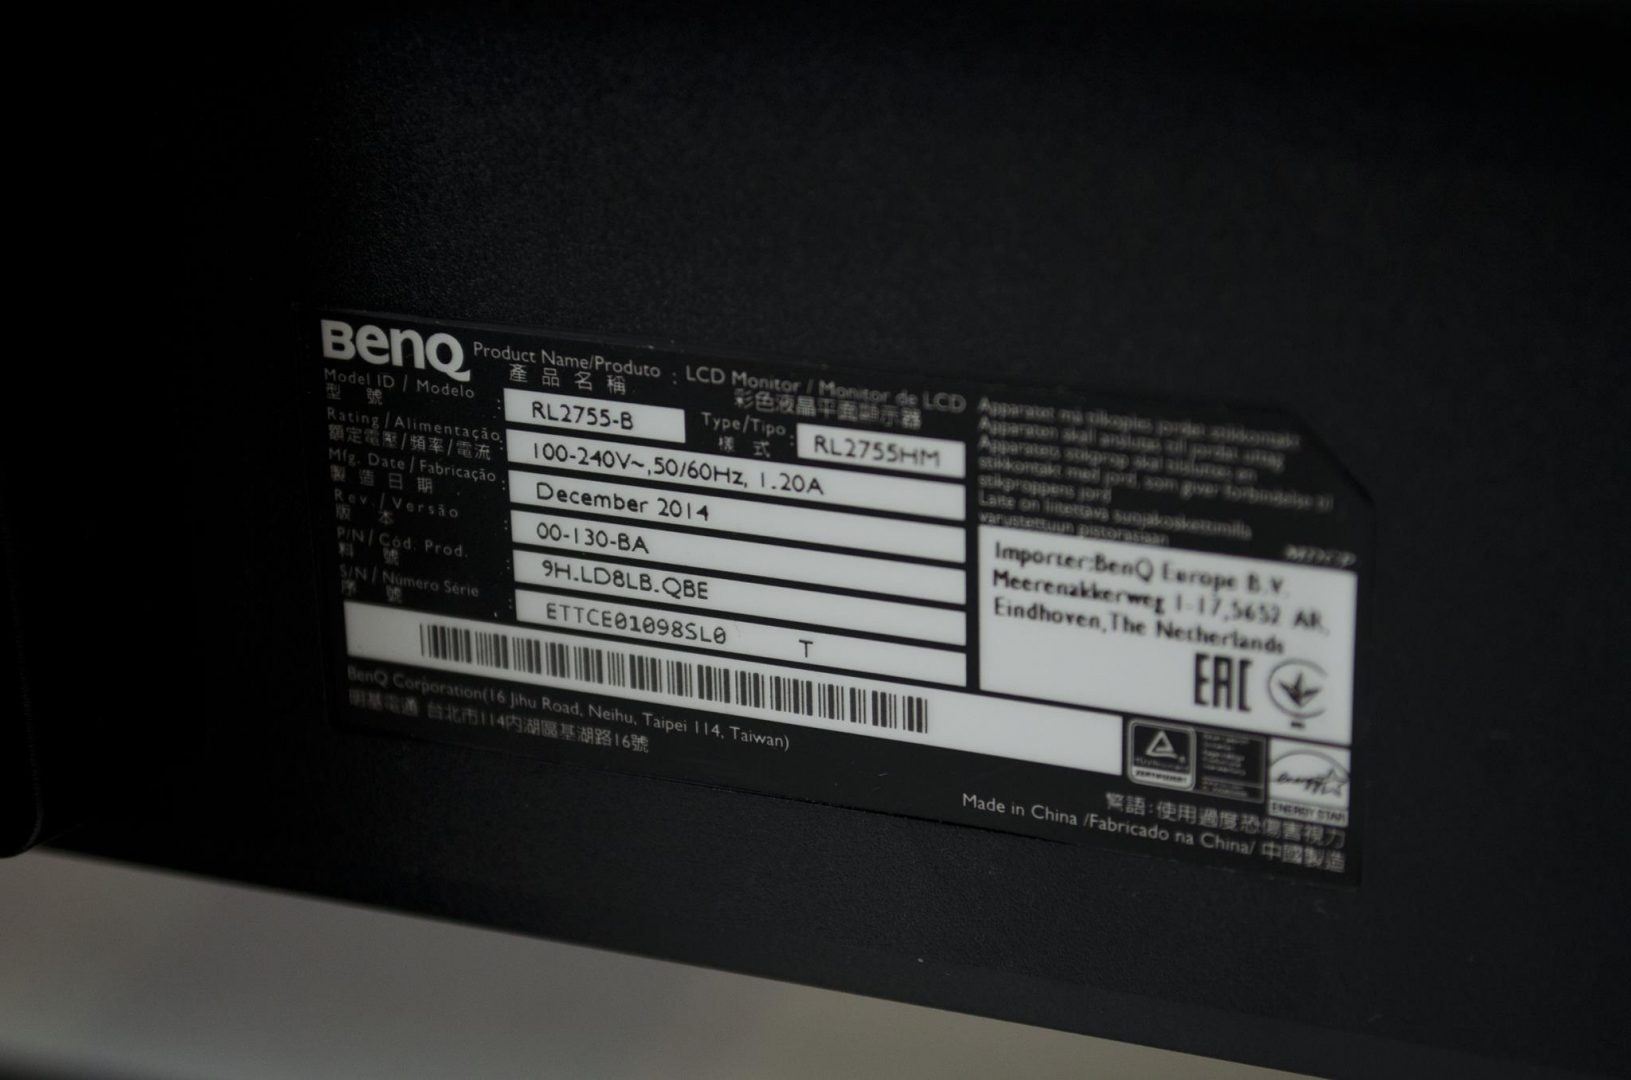 ben q rl2755b monitor review_3